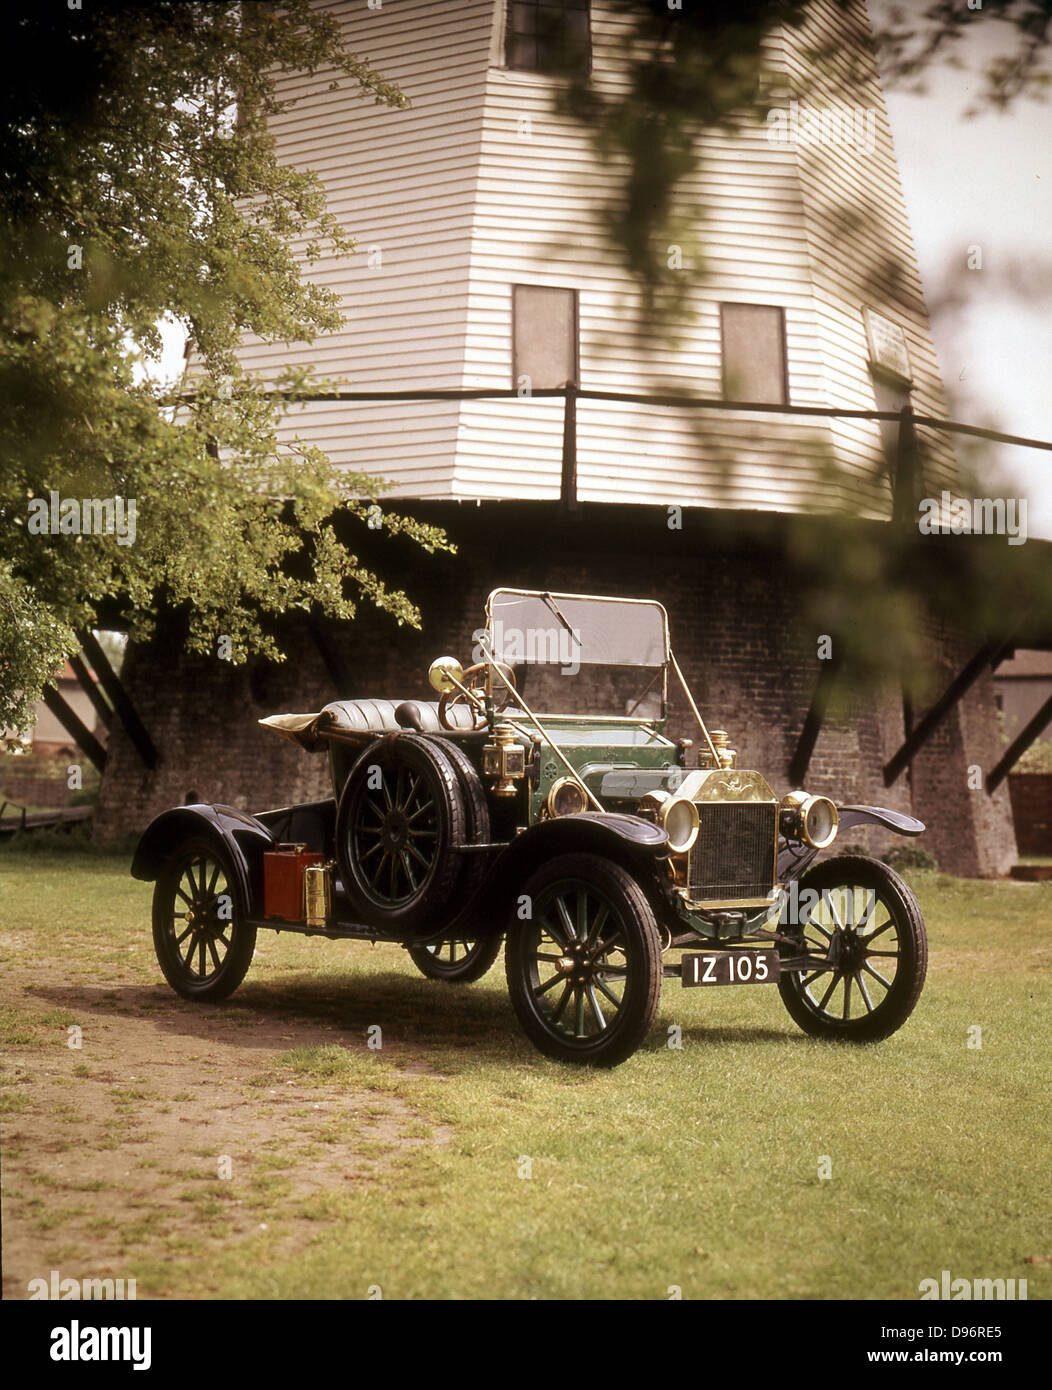 Ford Model T Stock Photos & Ford Model T Stock Images - Alamy